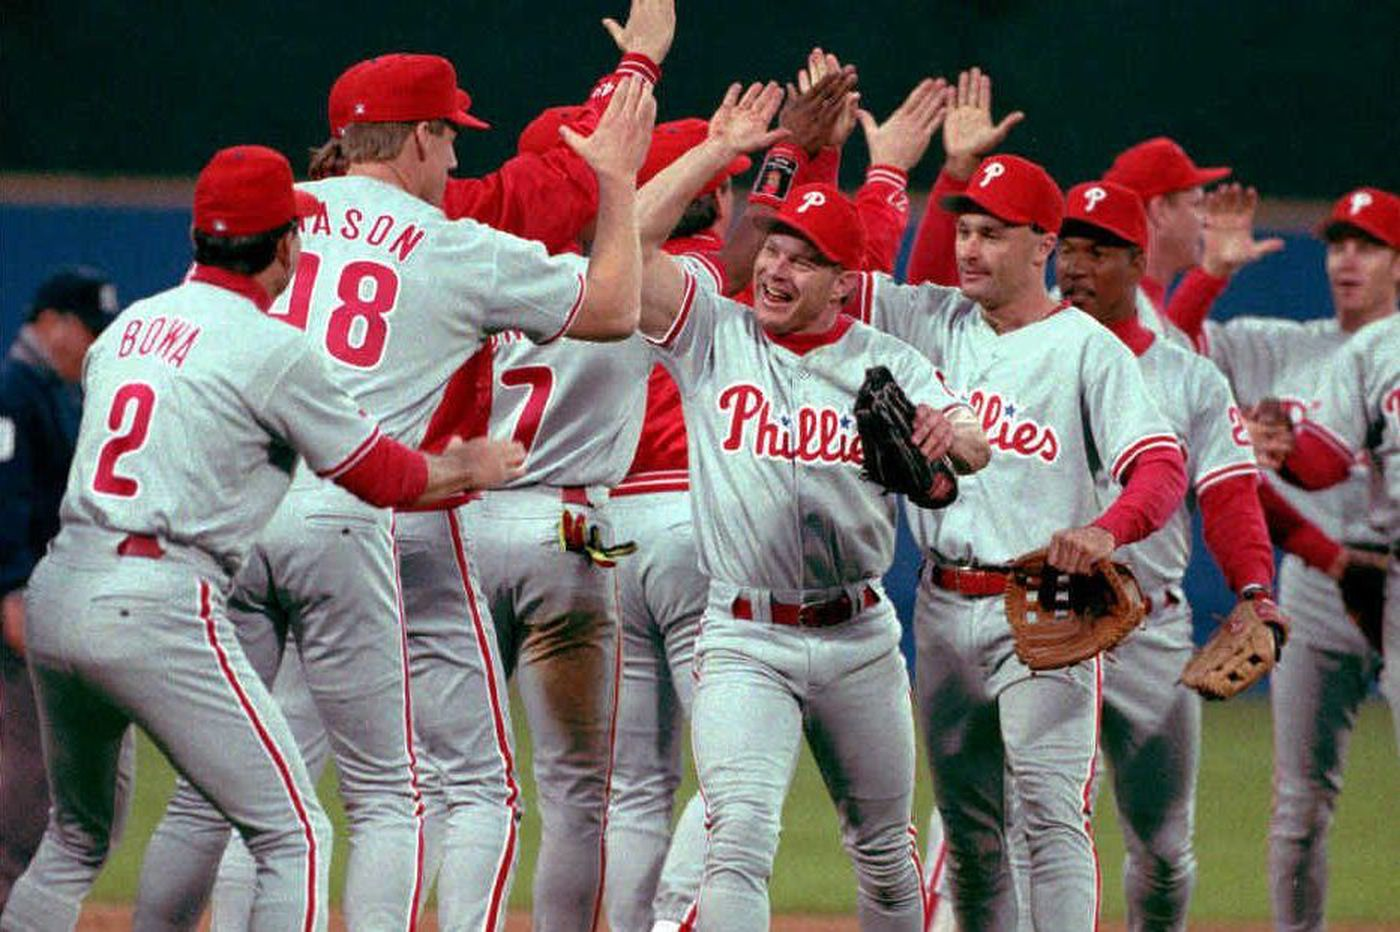 A look back at '93 Phillies offers sobering lesson in ruthlessness of time